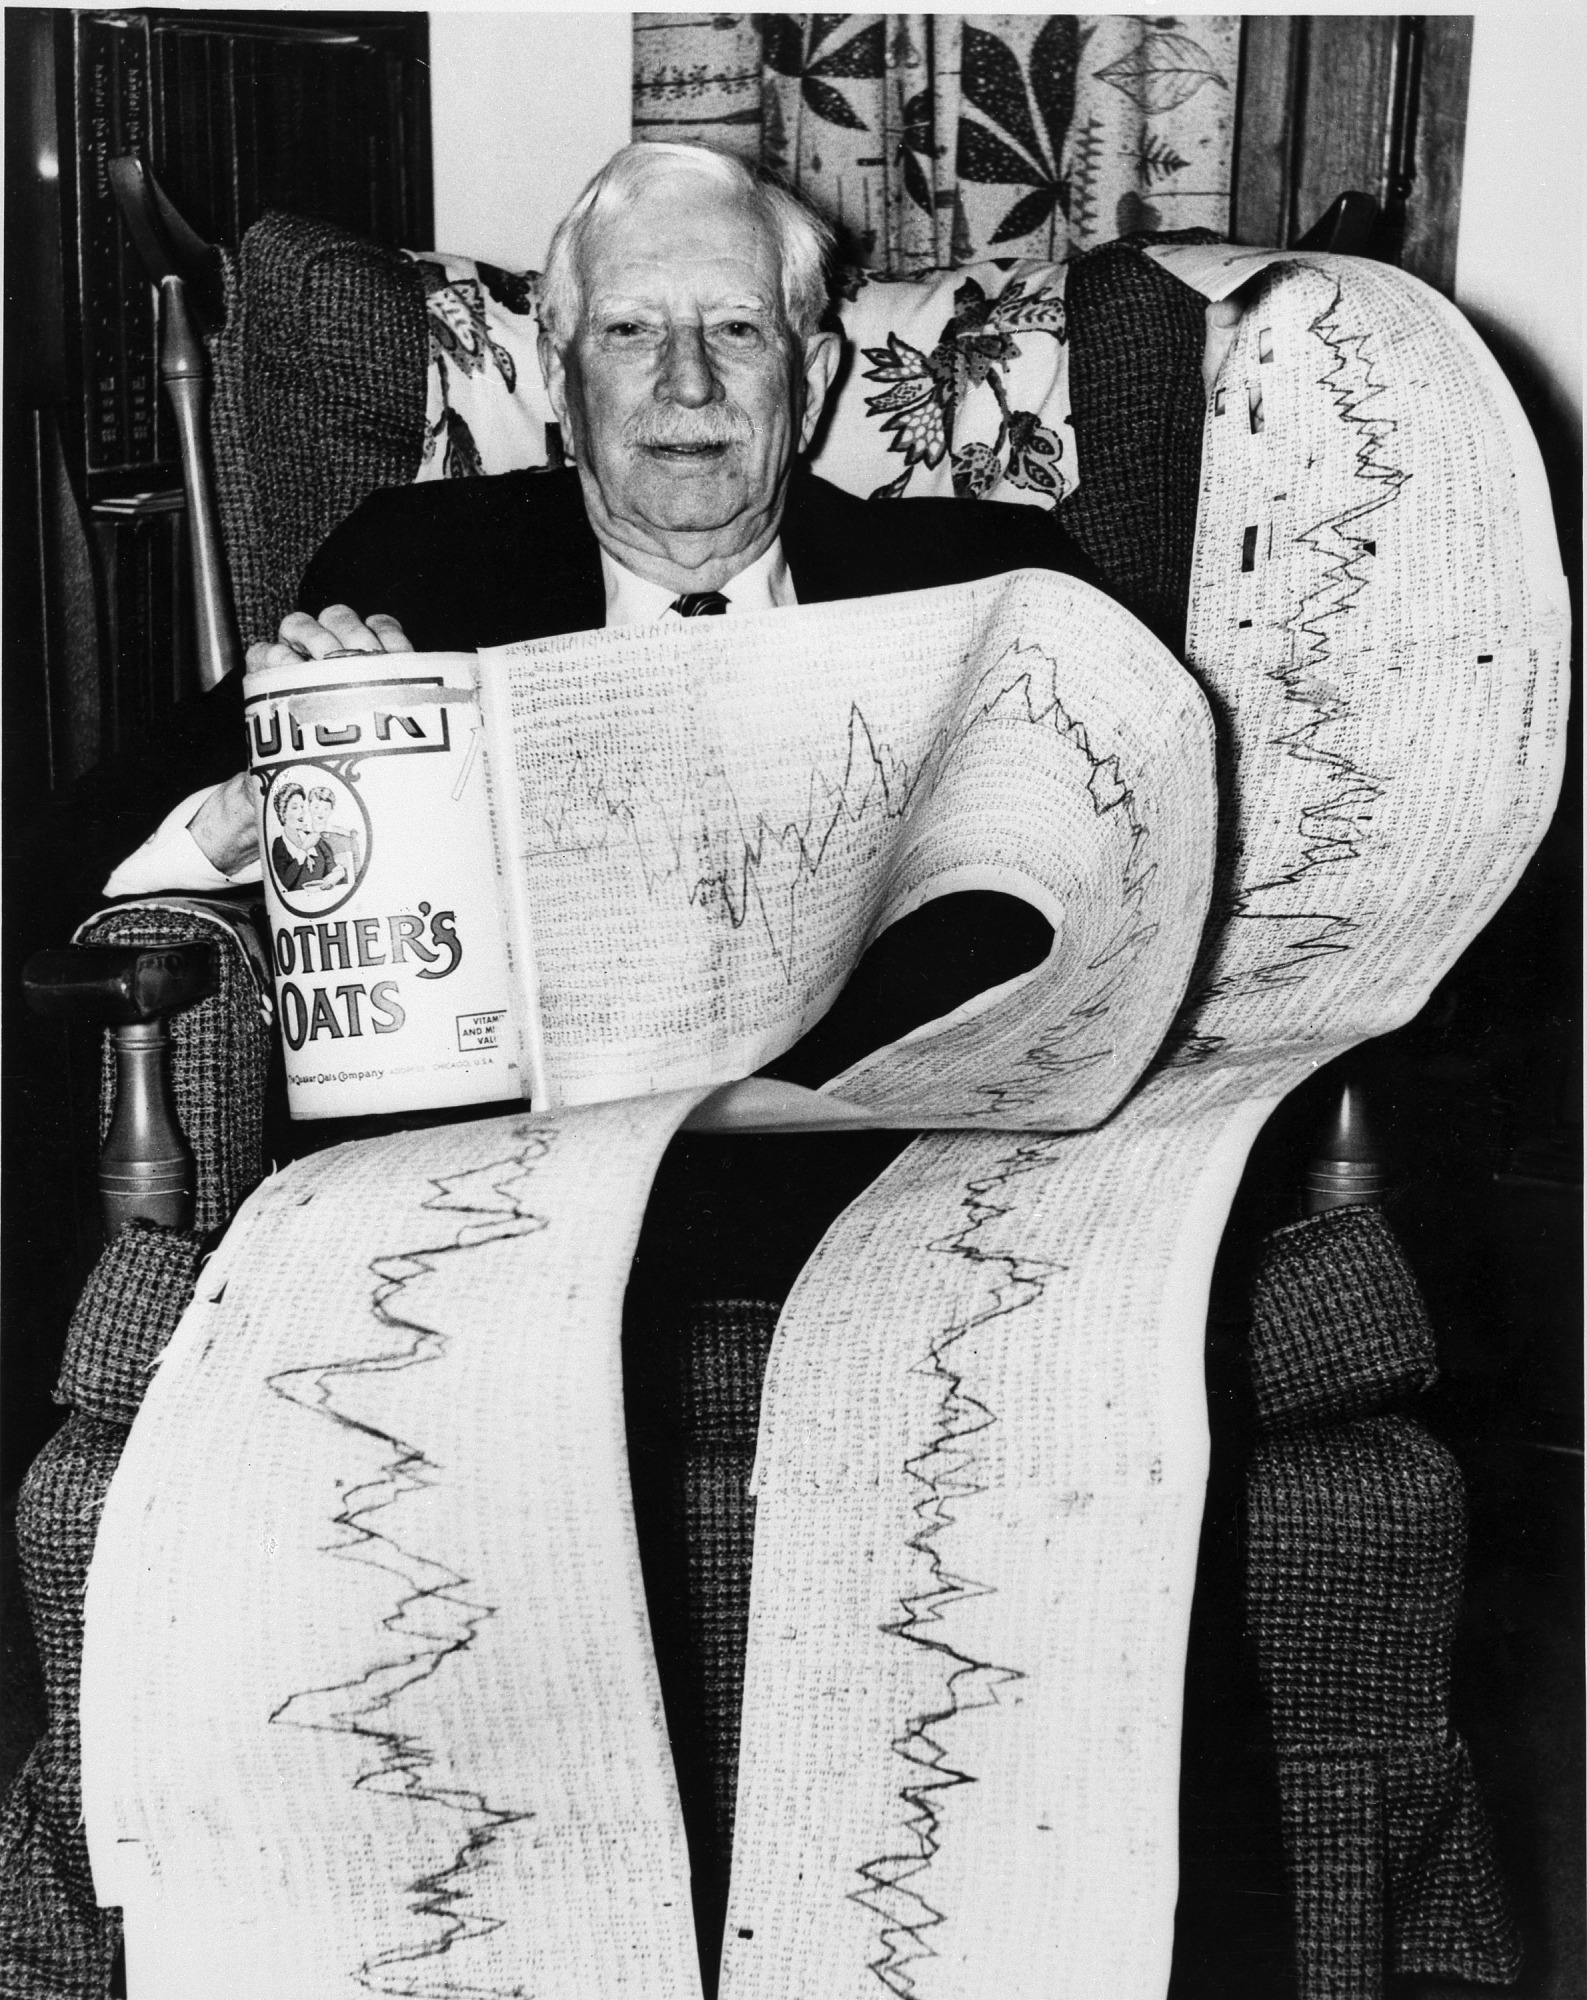 Secretary Abbot with Printouts, by Unknown, c. 1968, Smithsonian Archives - History Div, 94-4039.